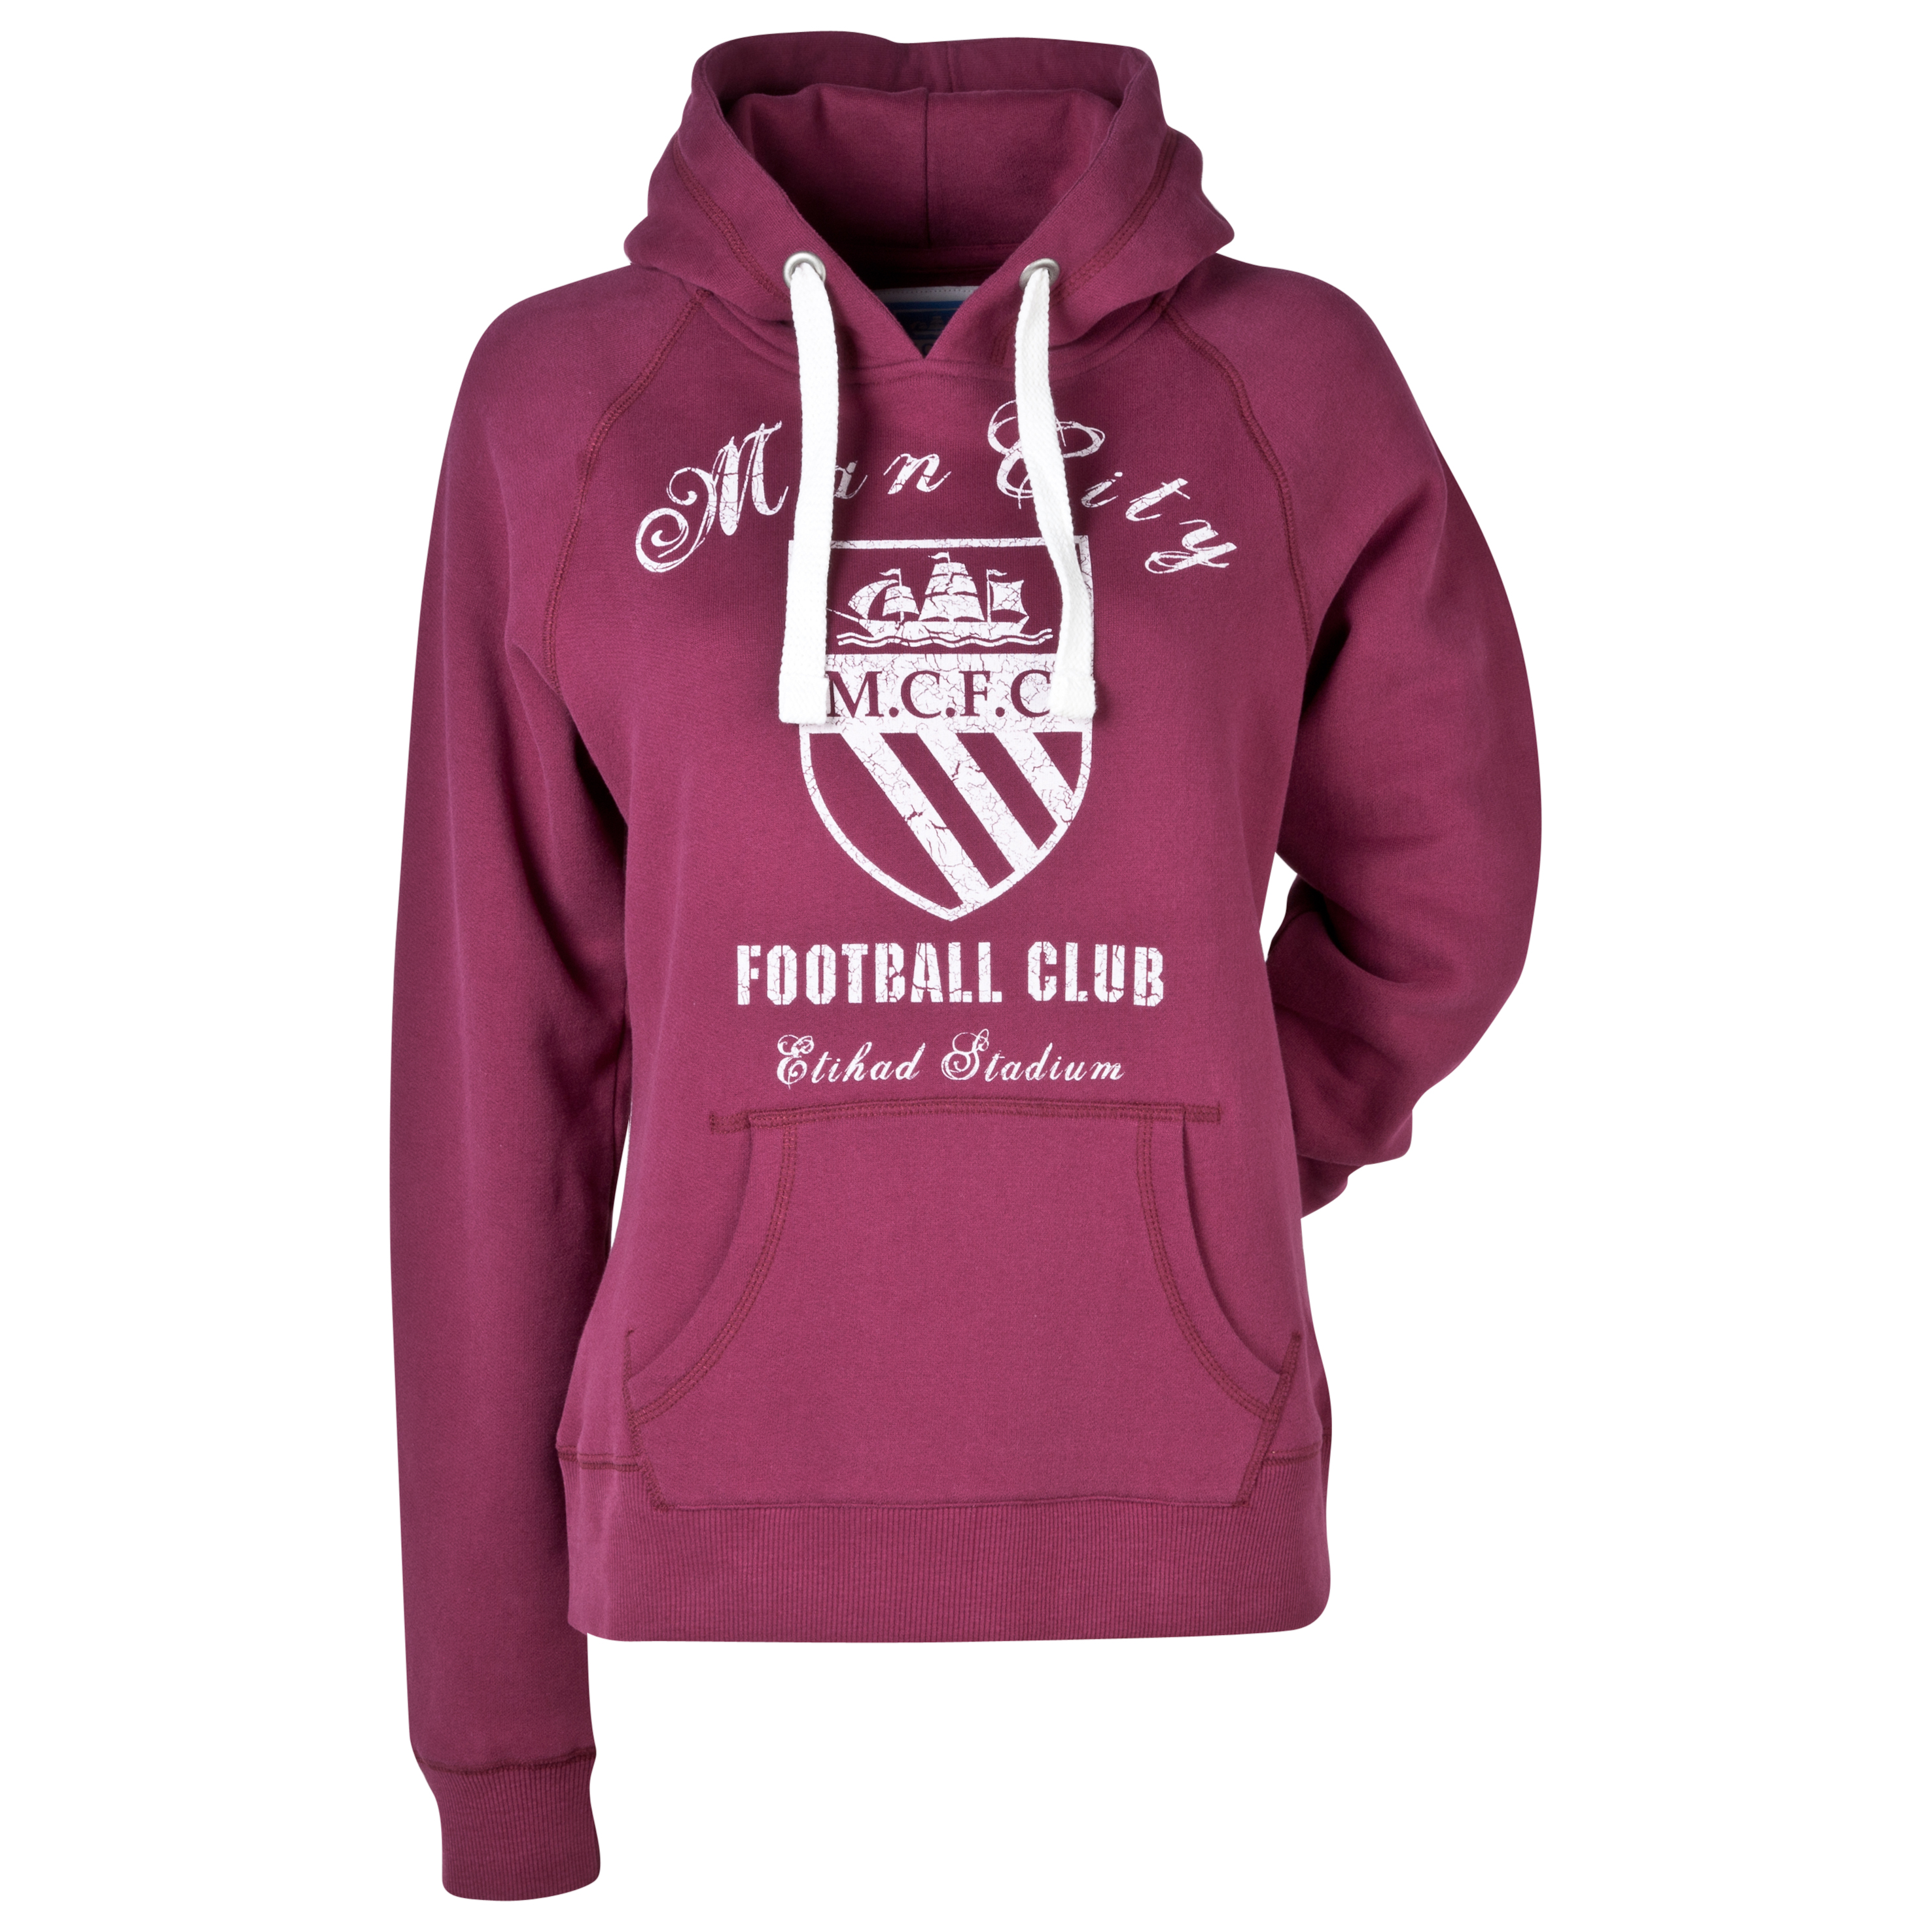 Womens Hoodies, Sweatshirts & Track Tops